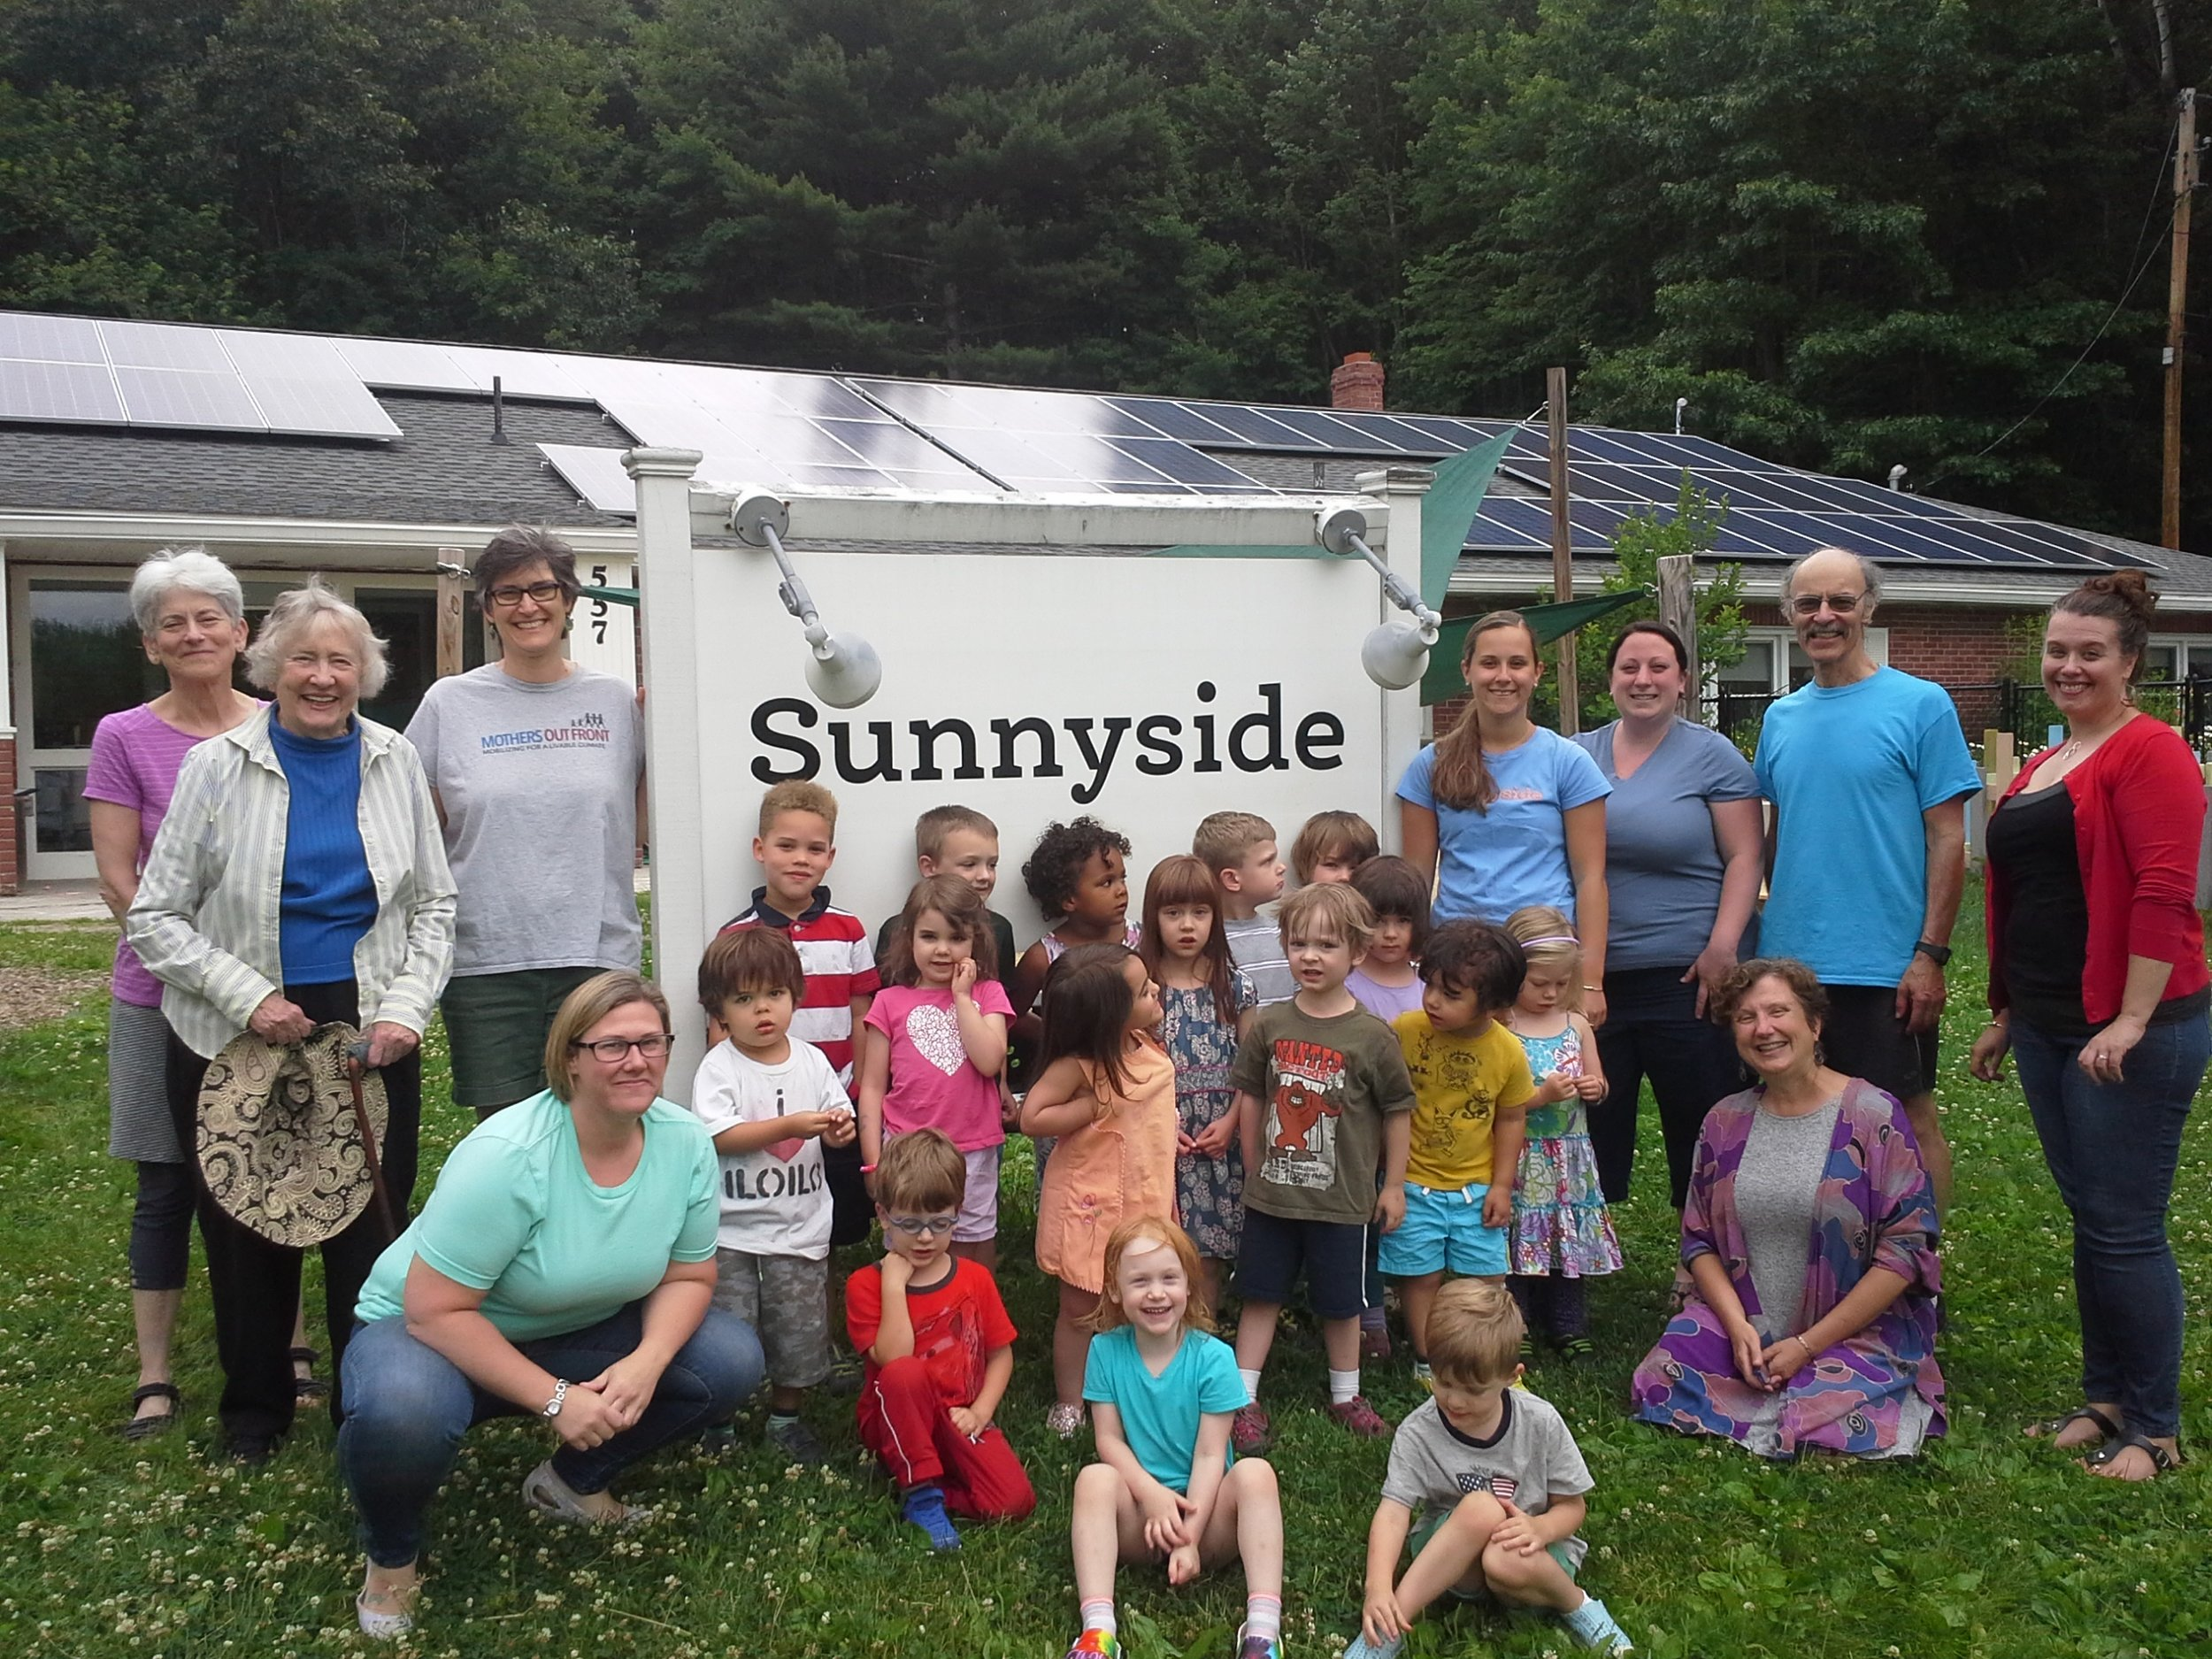 Sunnyside childcare center's new 24.7 kW solar array - one of the first Rays the valley projects installed - June 2018. (Northampton MA)